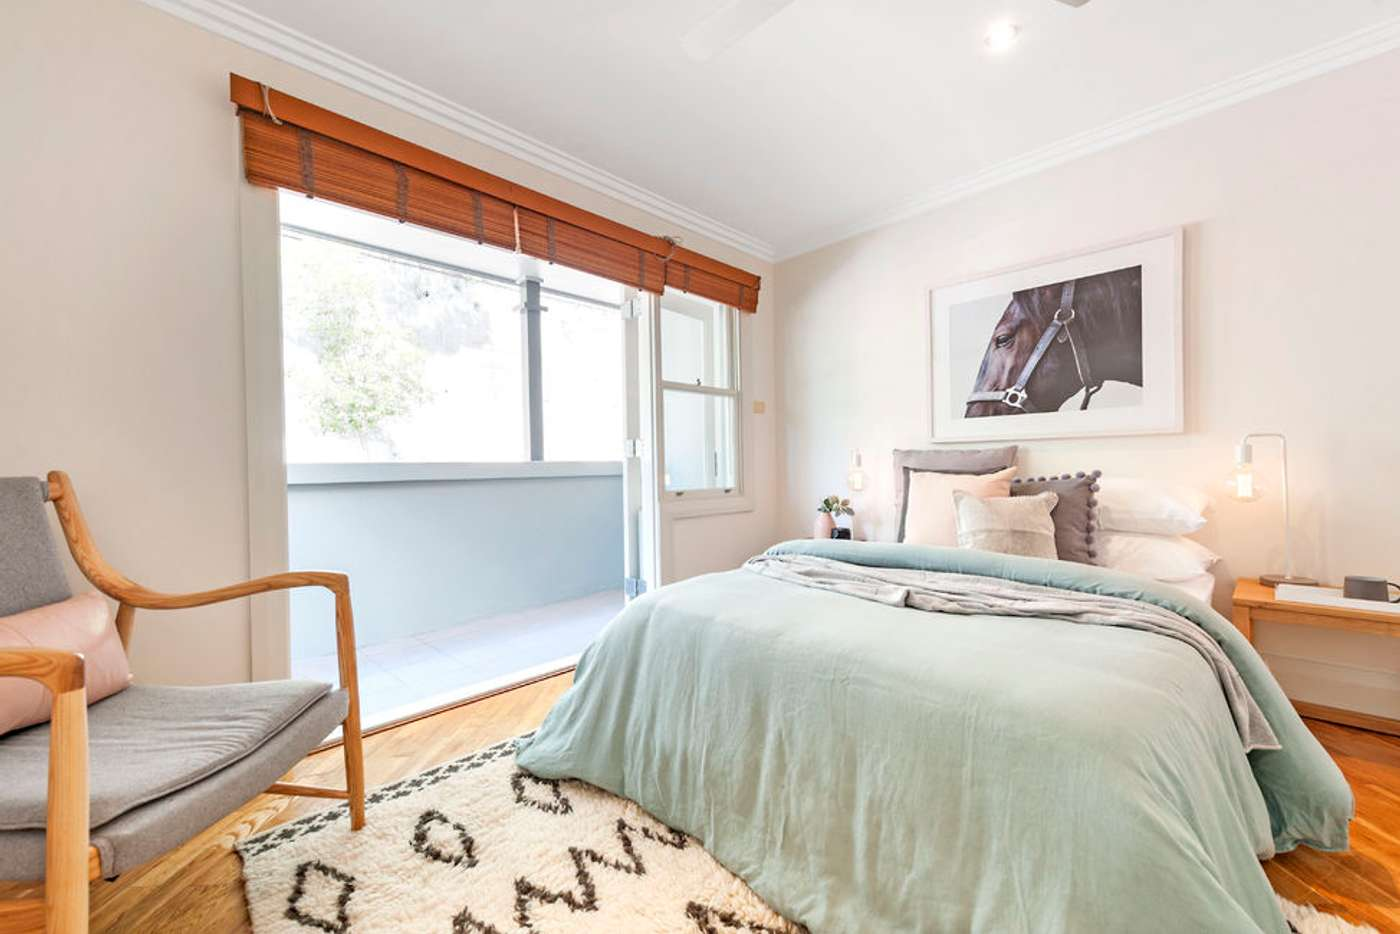 Sixth view of Homely house listing, 40B Clayton Street, Balmain NSW 2041